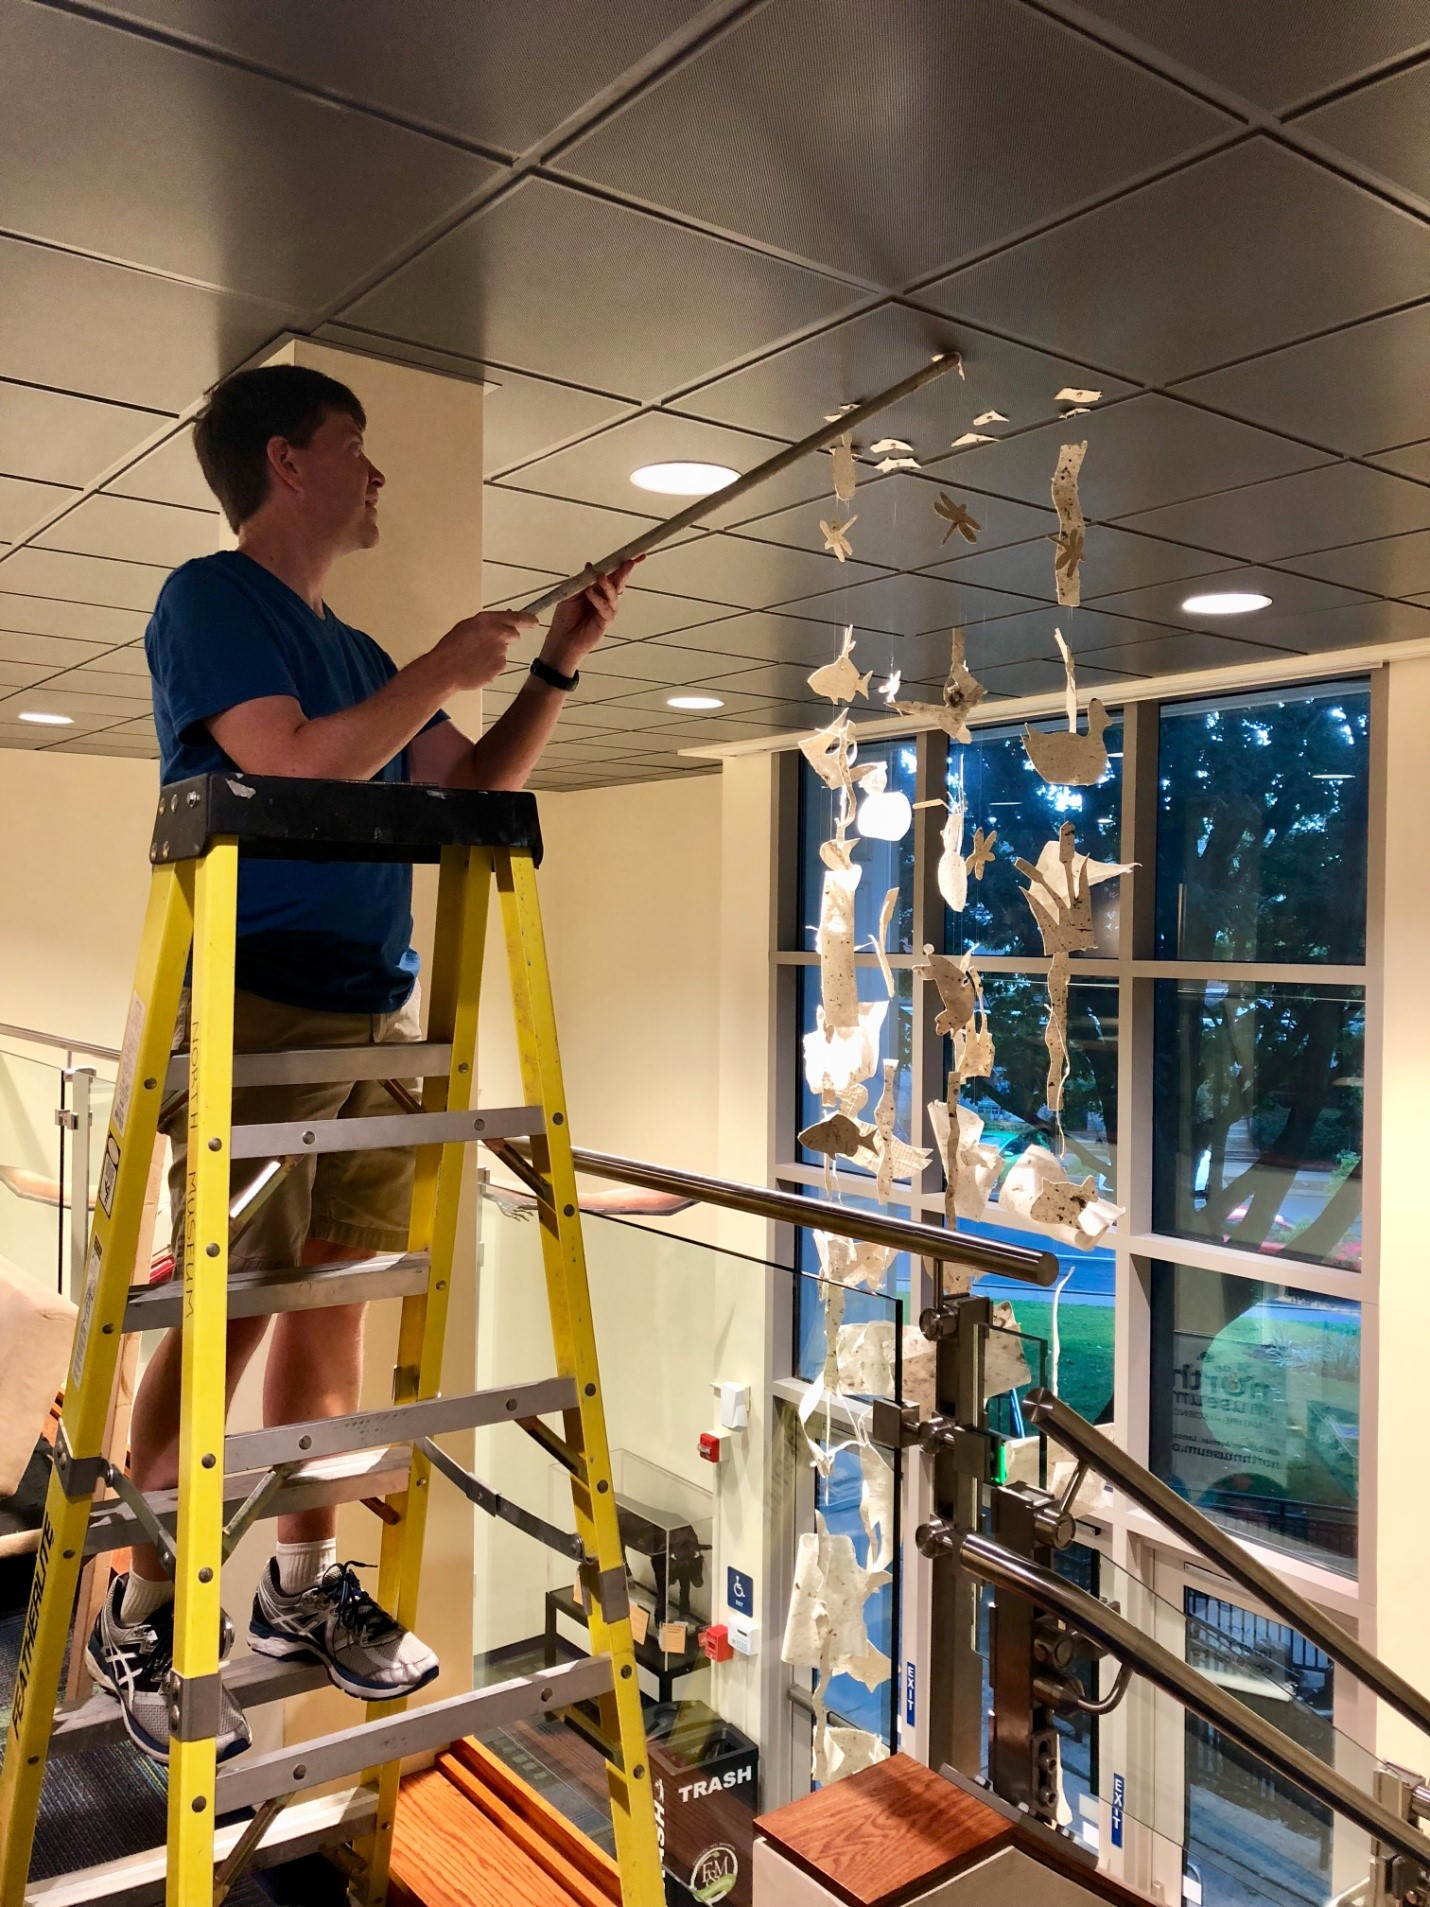 Man on a step ladder, hanging artwork from the ceiling. Artwork looks like a mobile.